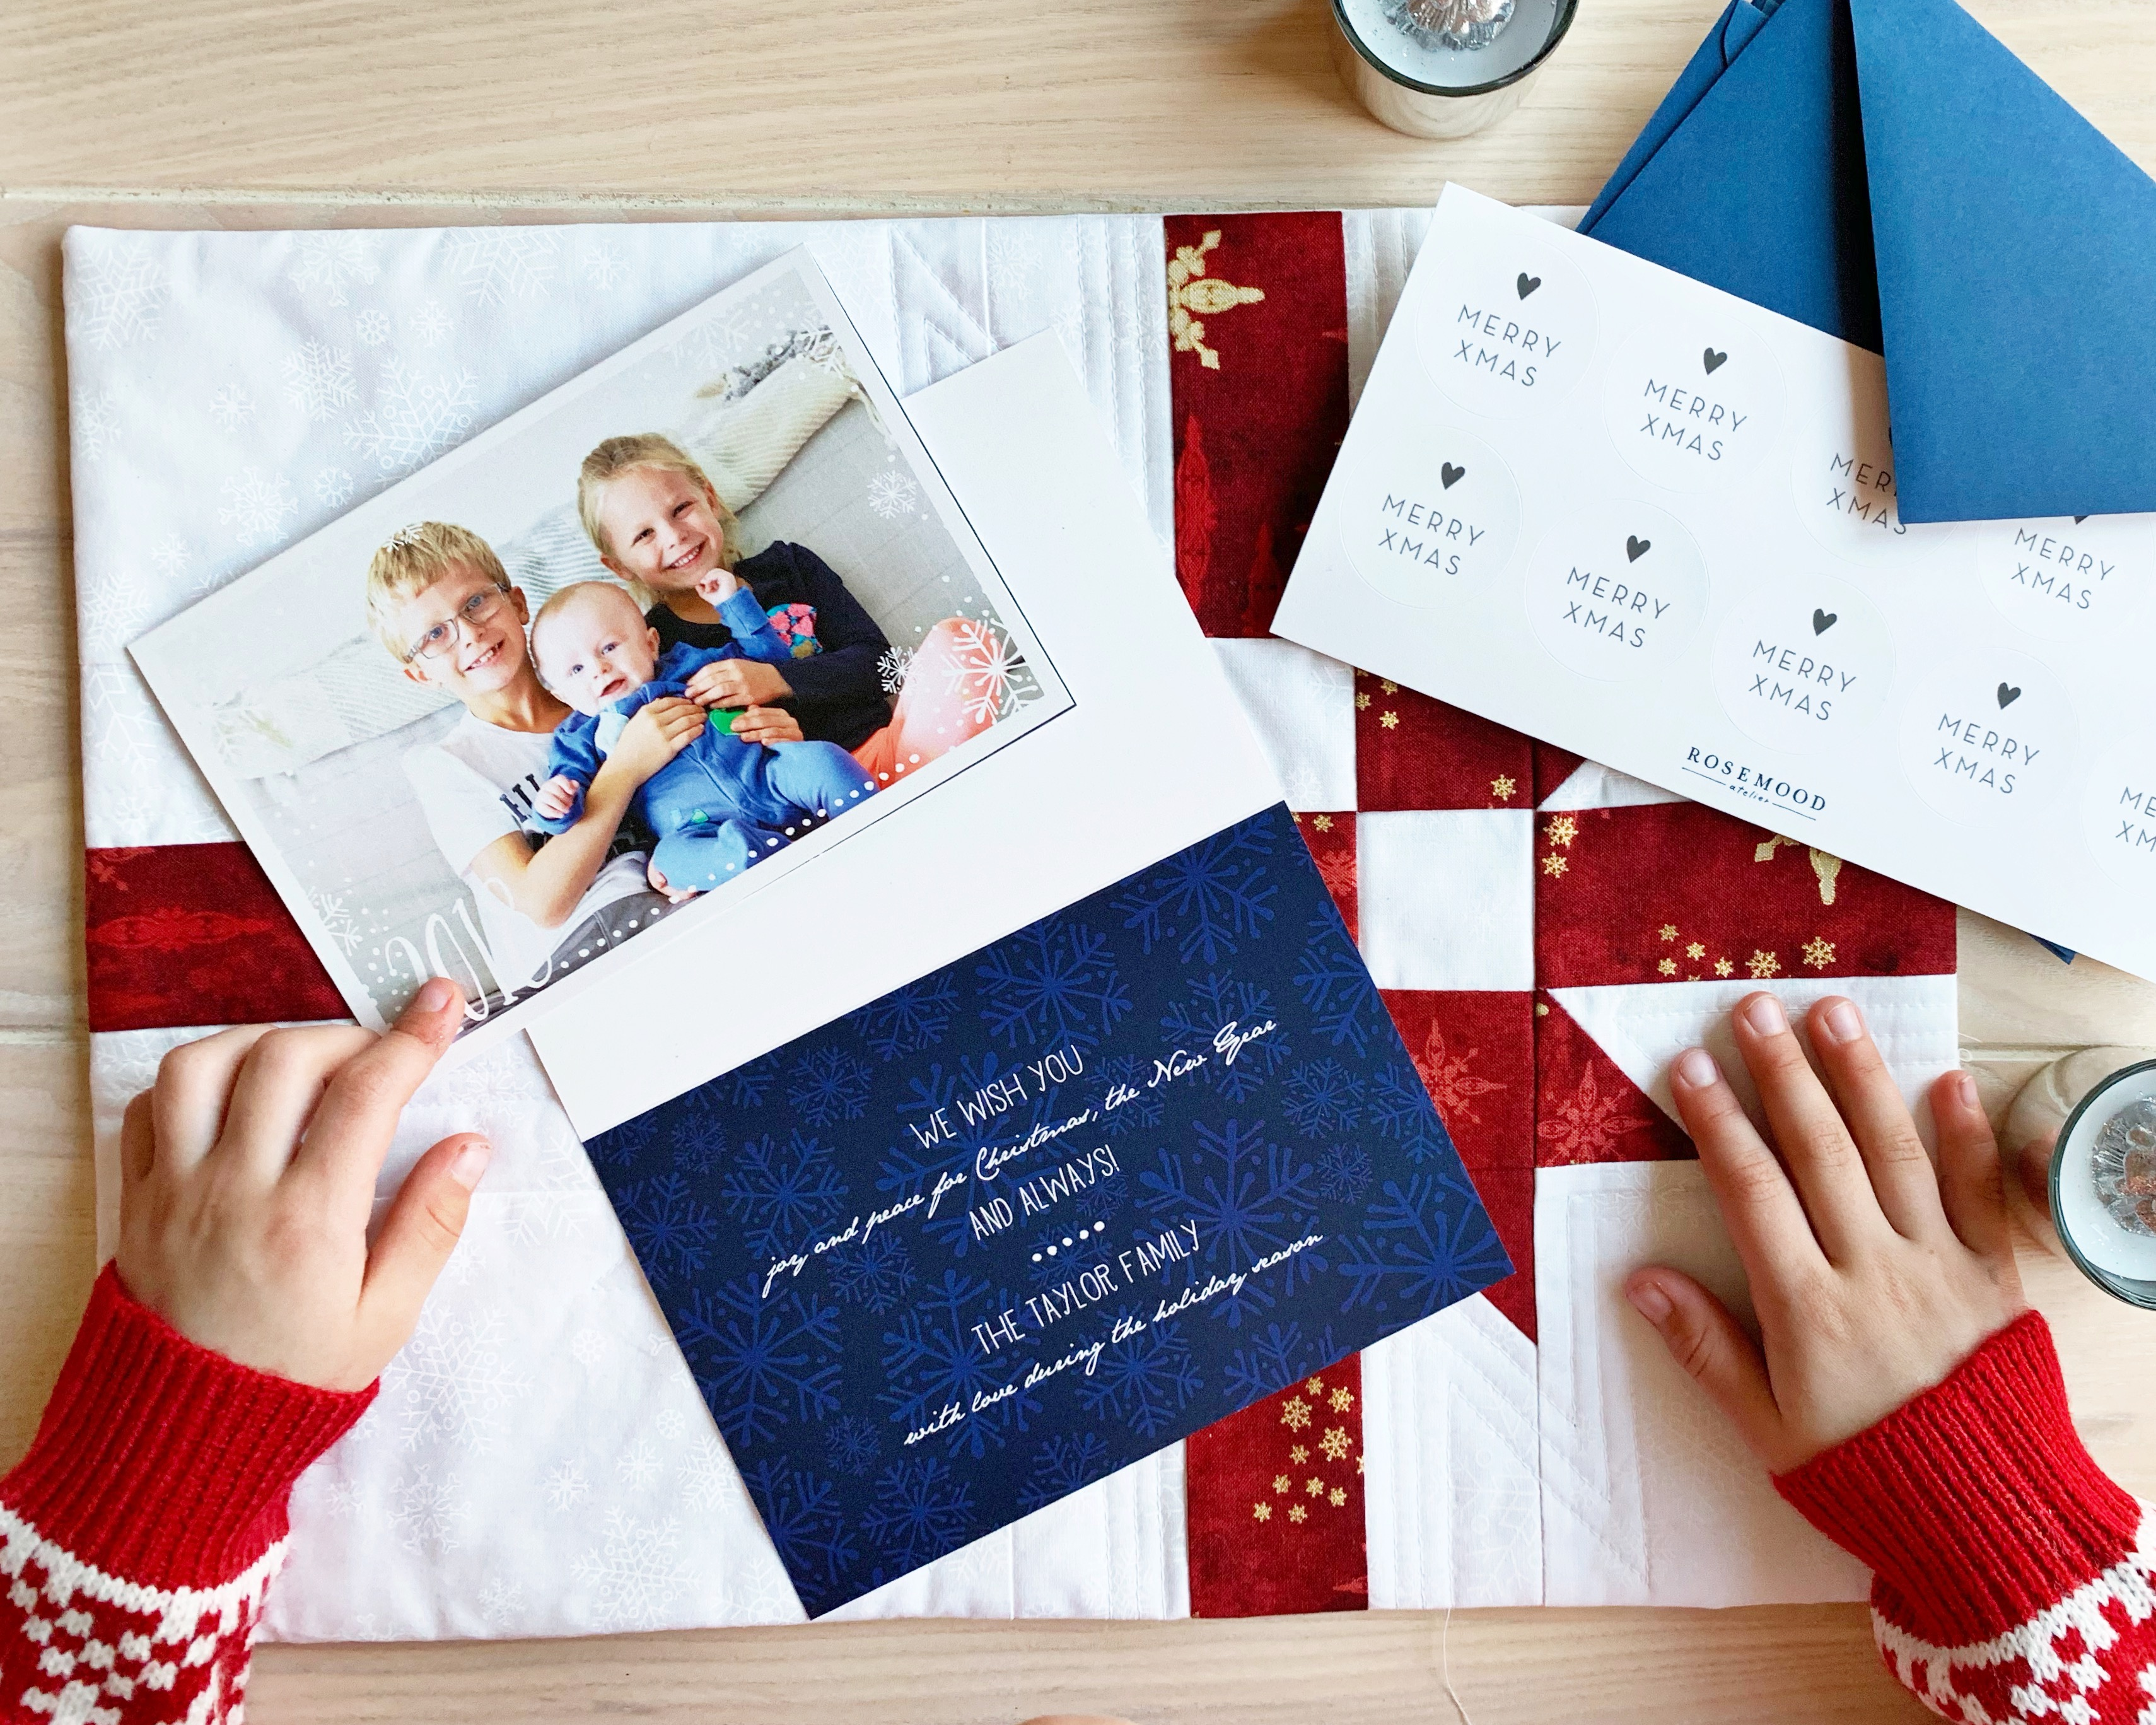 Getting ready for the holidays with Rosemood Christmas Cards